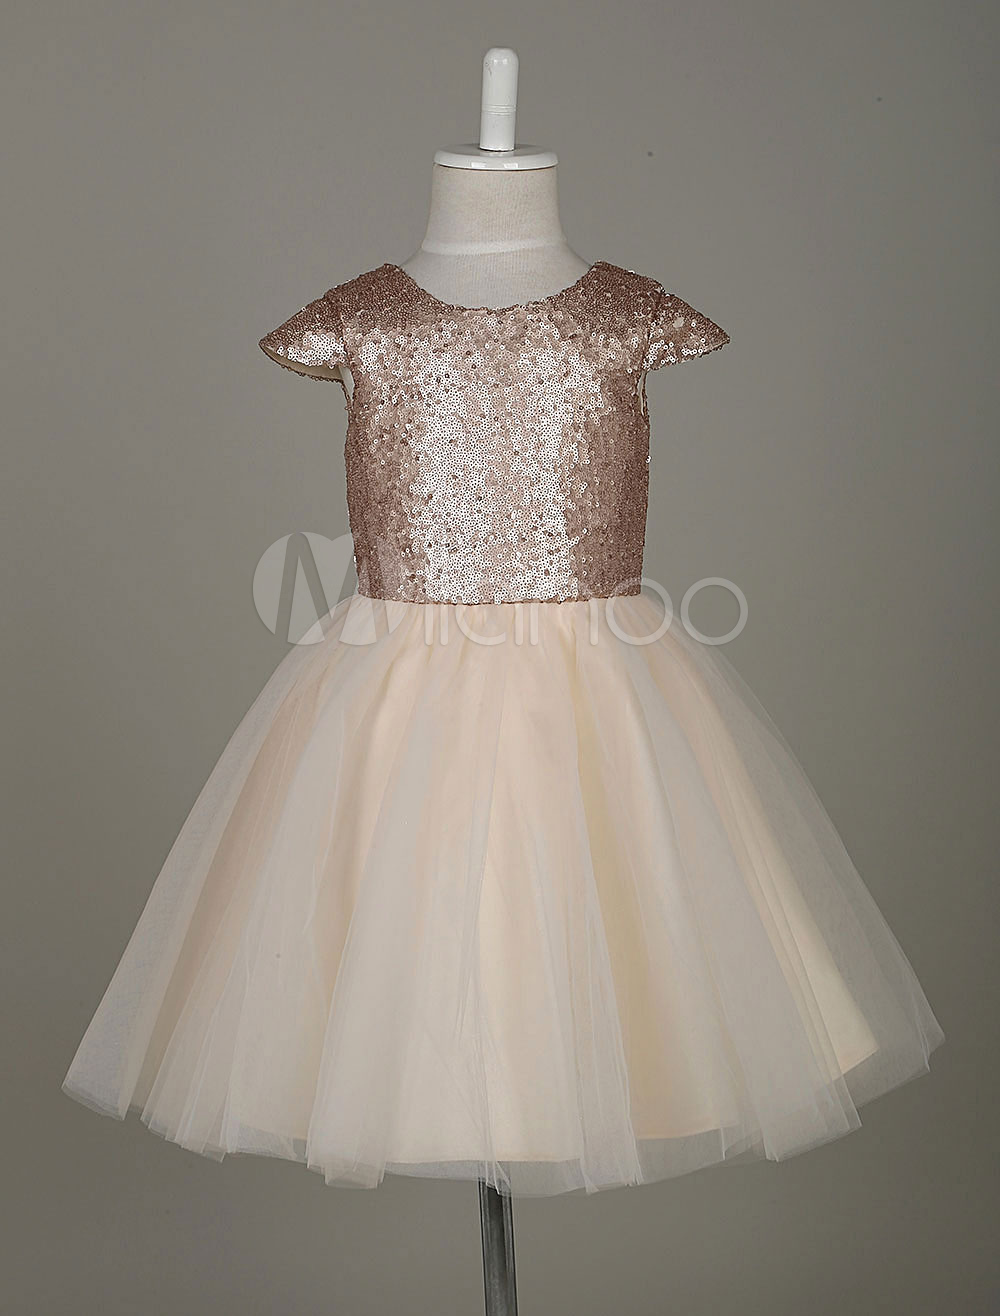 81a7cec4223 Flower Girl Dresses Light Gold Sequin Tutu Dress A Line Short Sleeve ...